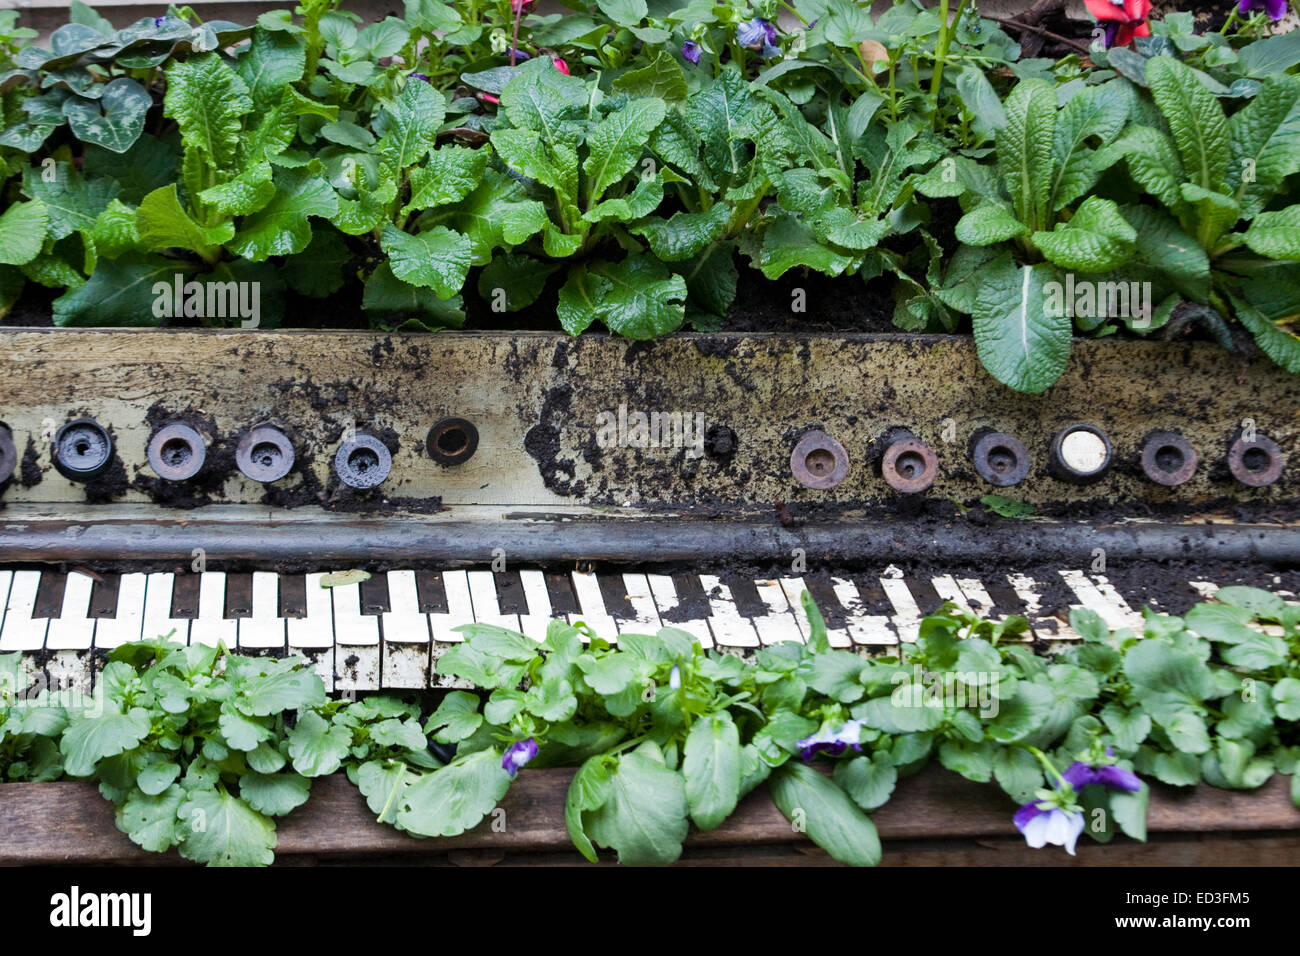 Old Organ with plants growing out of it in a Garden - Stock Image